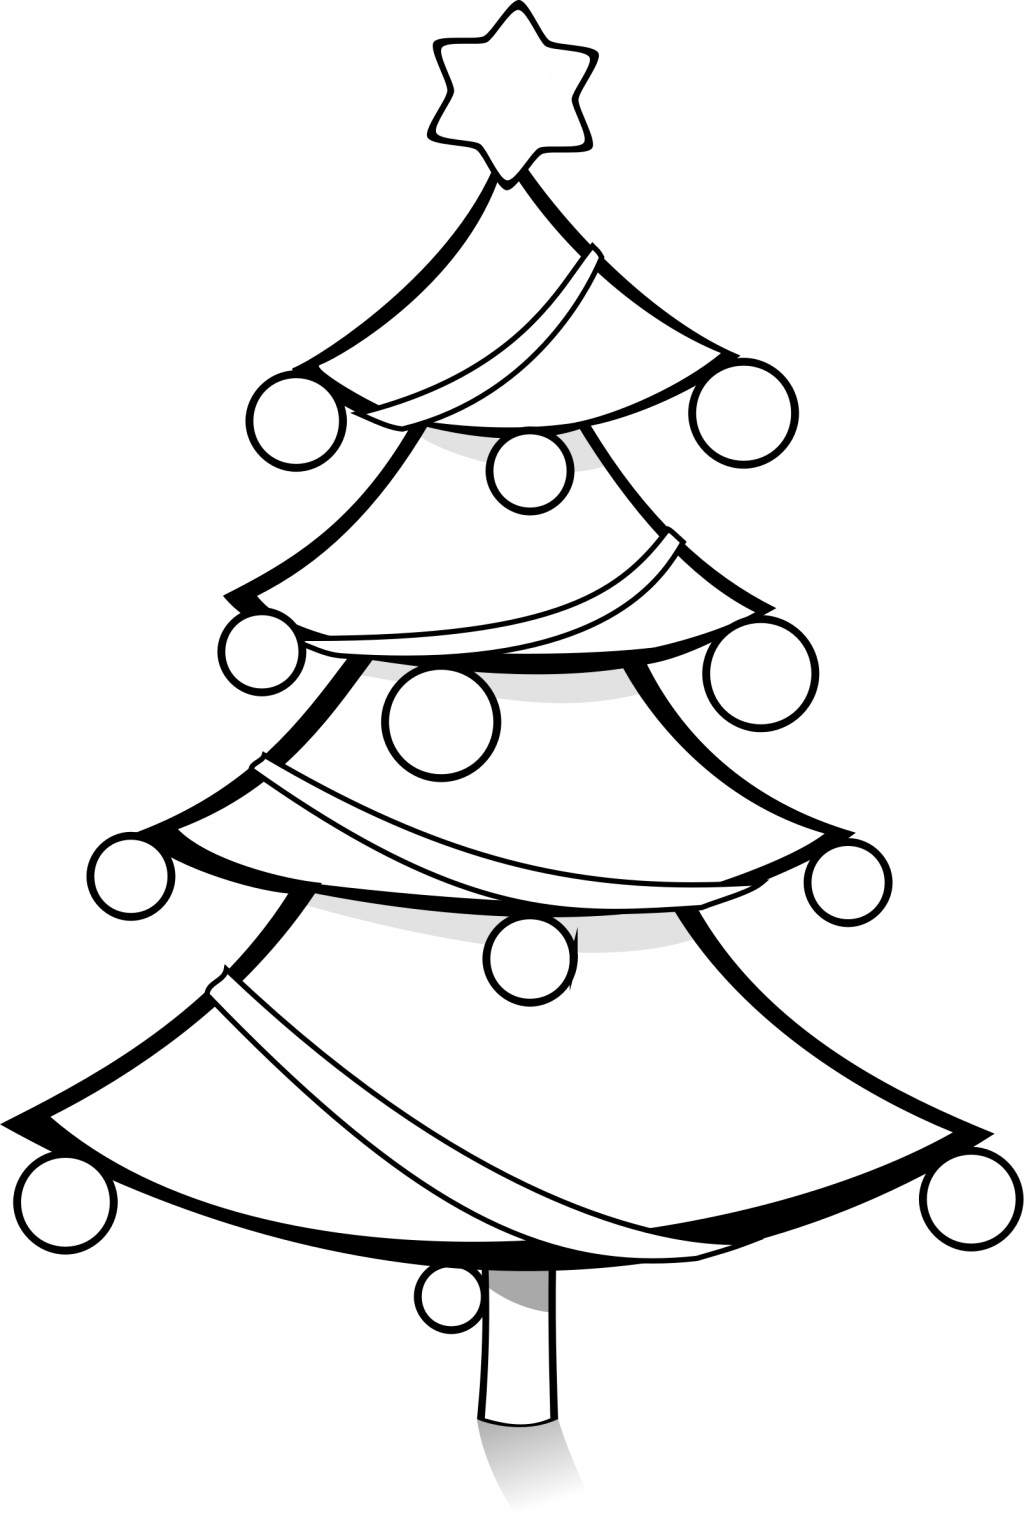 Christmas Tree Clipart Outline.Black And White Christmas Tree Clipart 6 Clipart Station